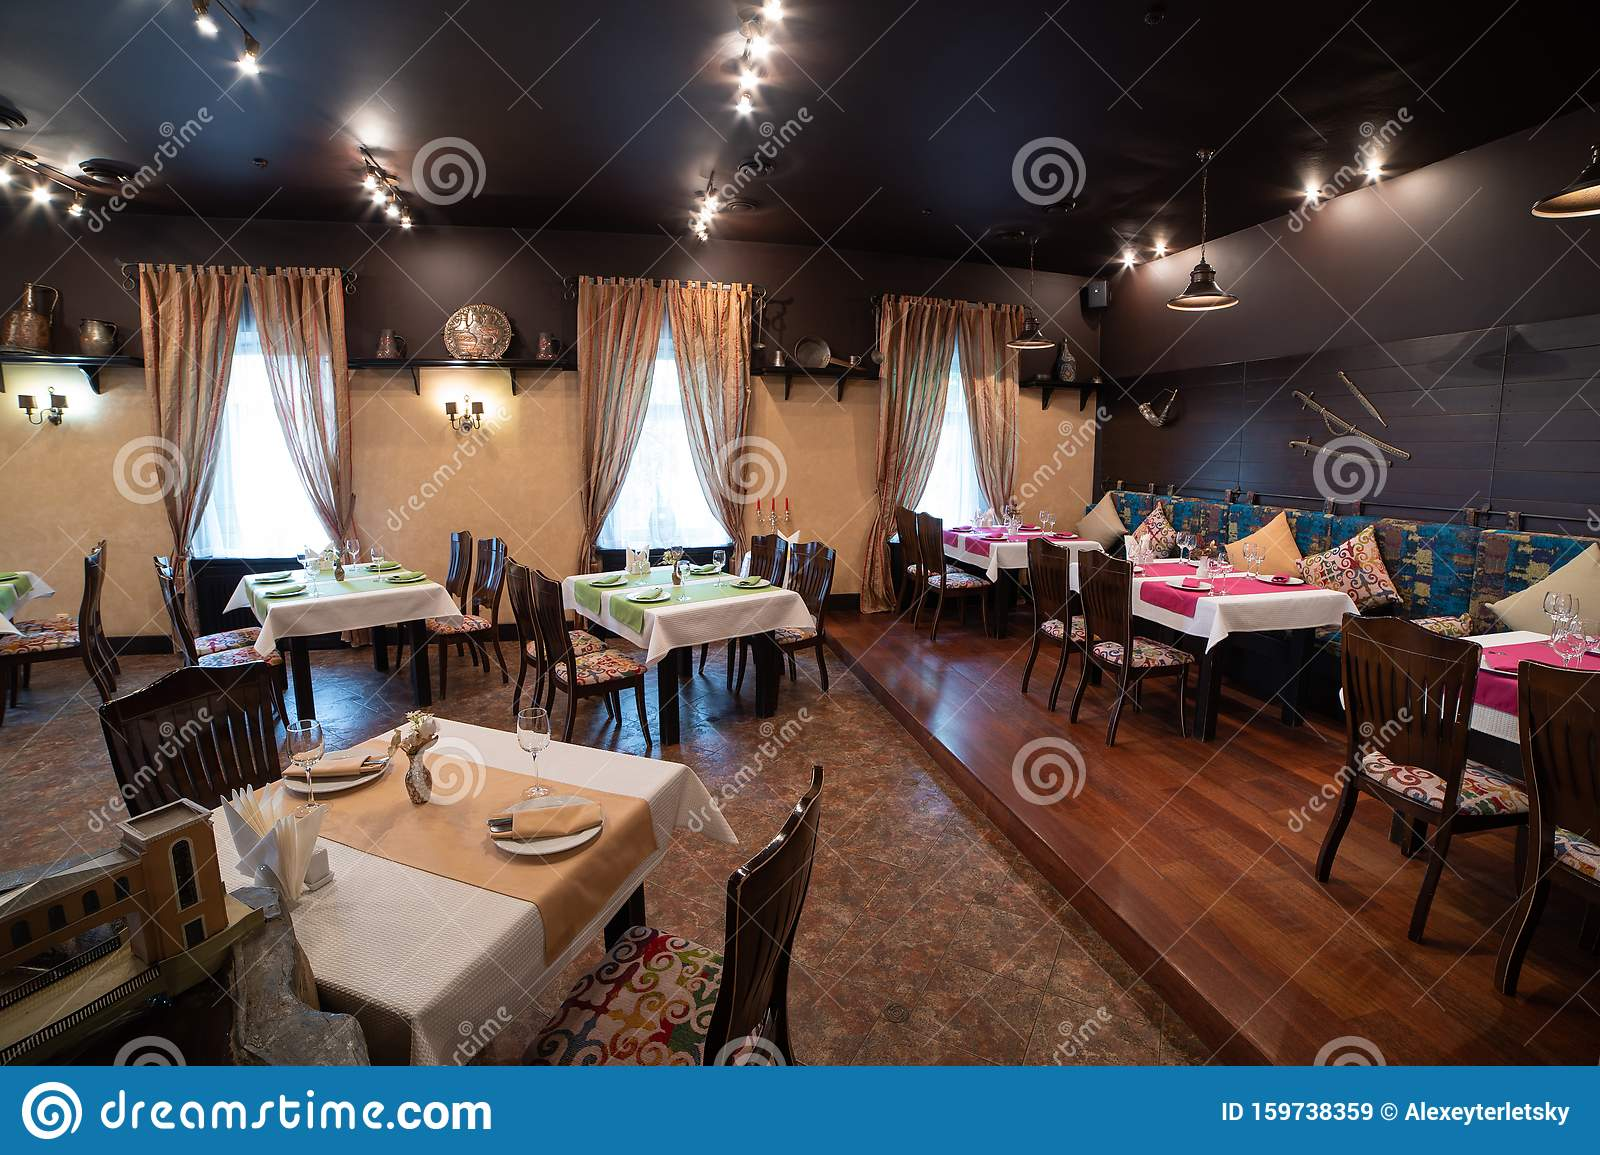 Cozy Restaurant Interior Cafe Lounge Table Party Stock Image Image Of Chicken Dish 159738359